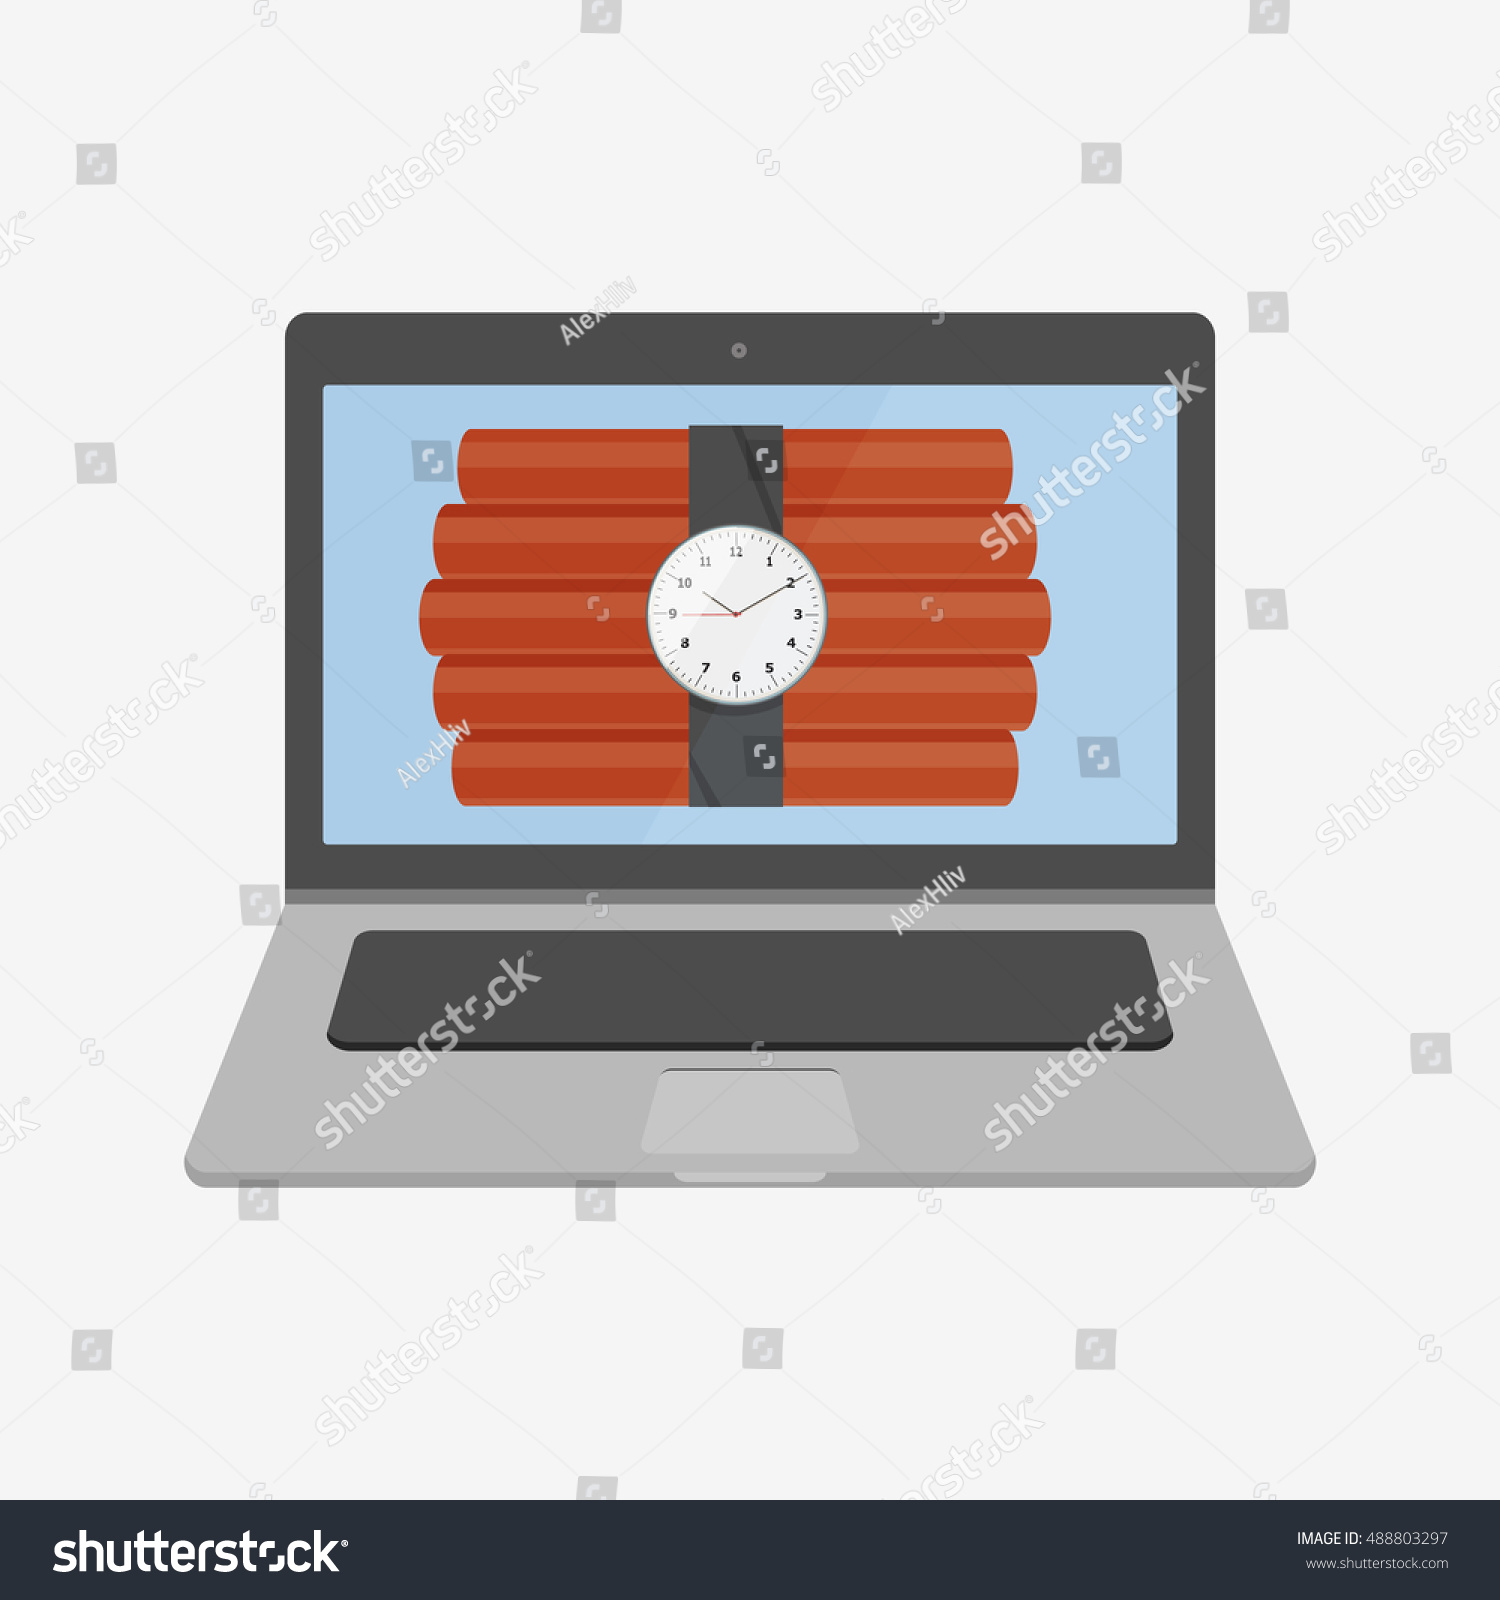 hight resolution of laptop vector illustration icon flat design style dynamite on screen laptop icon macbook mac imac apple laptop vector apple vector macbook vector